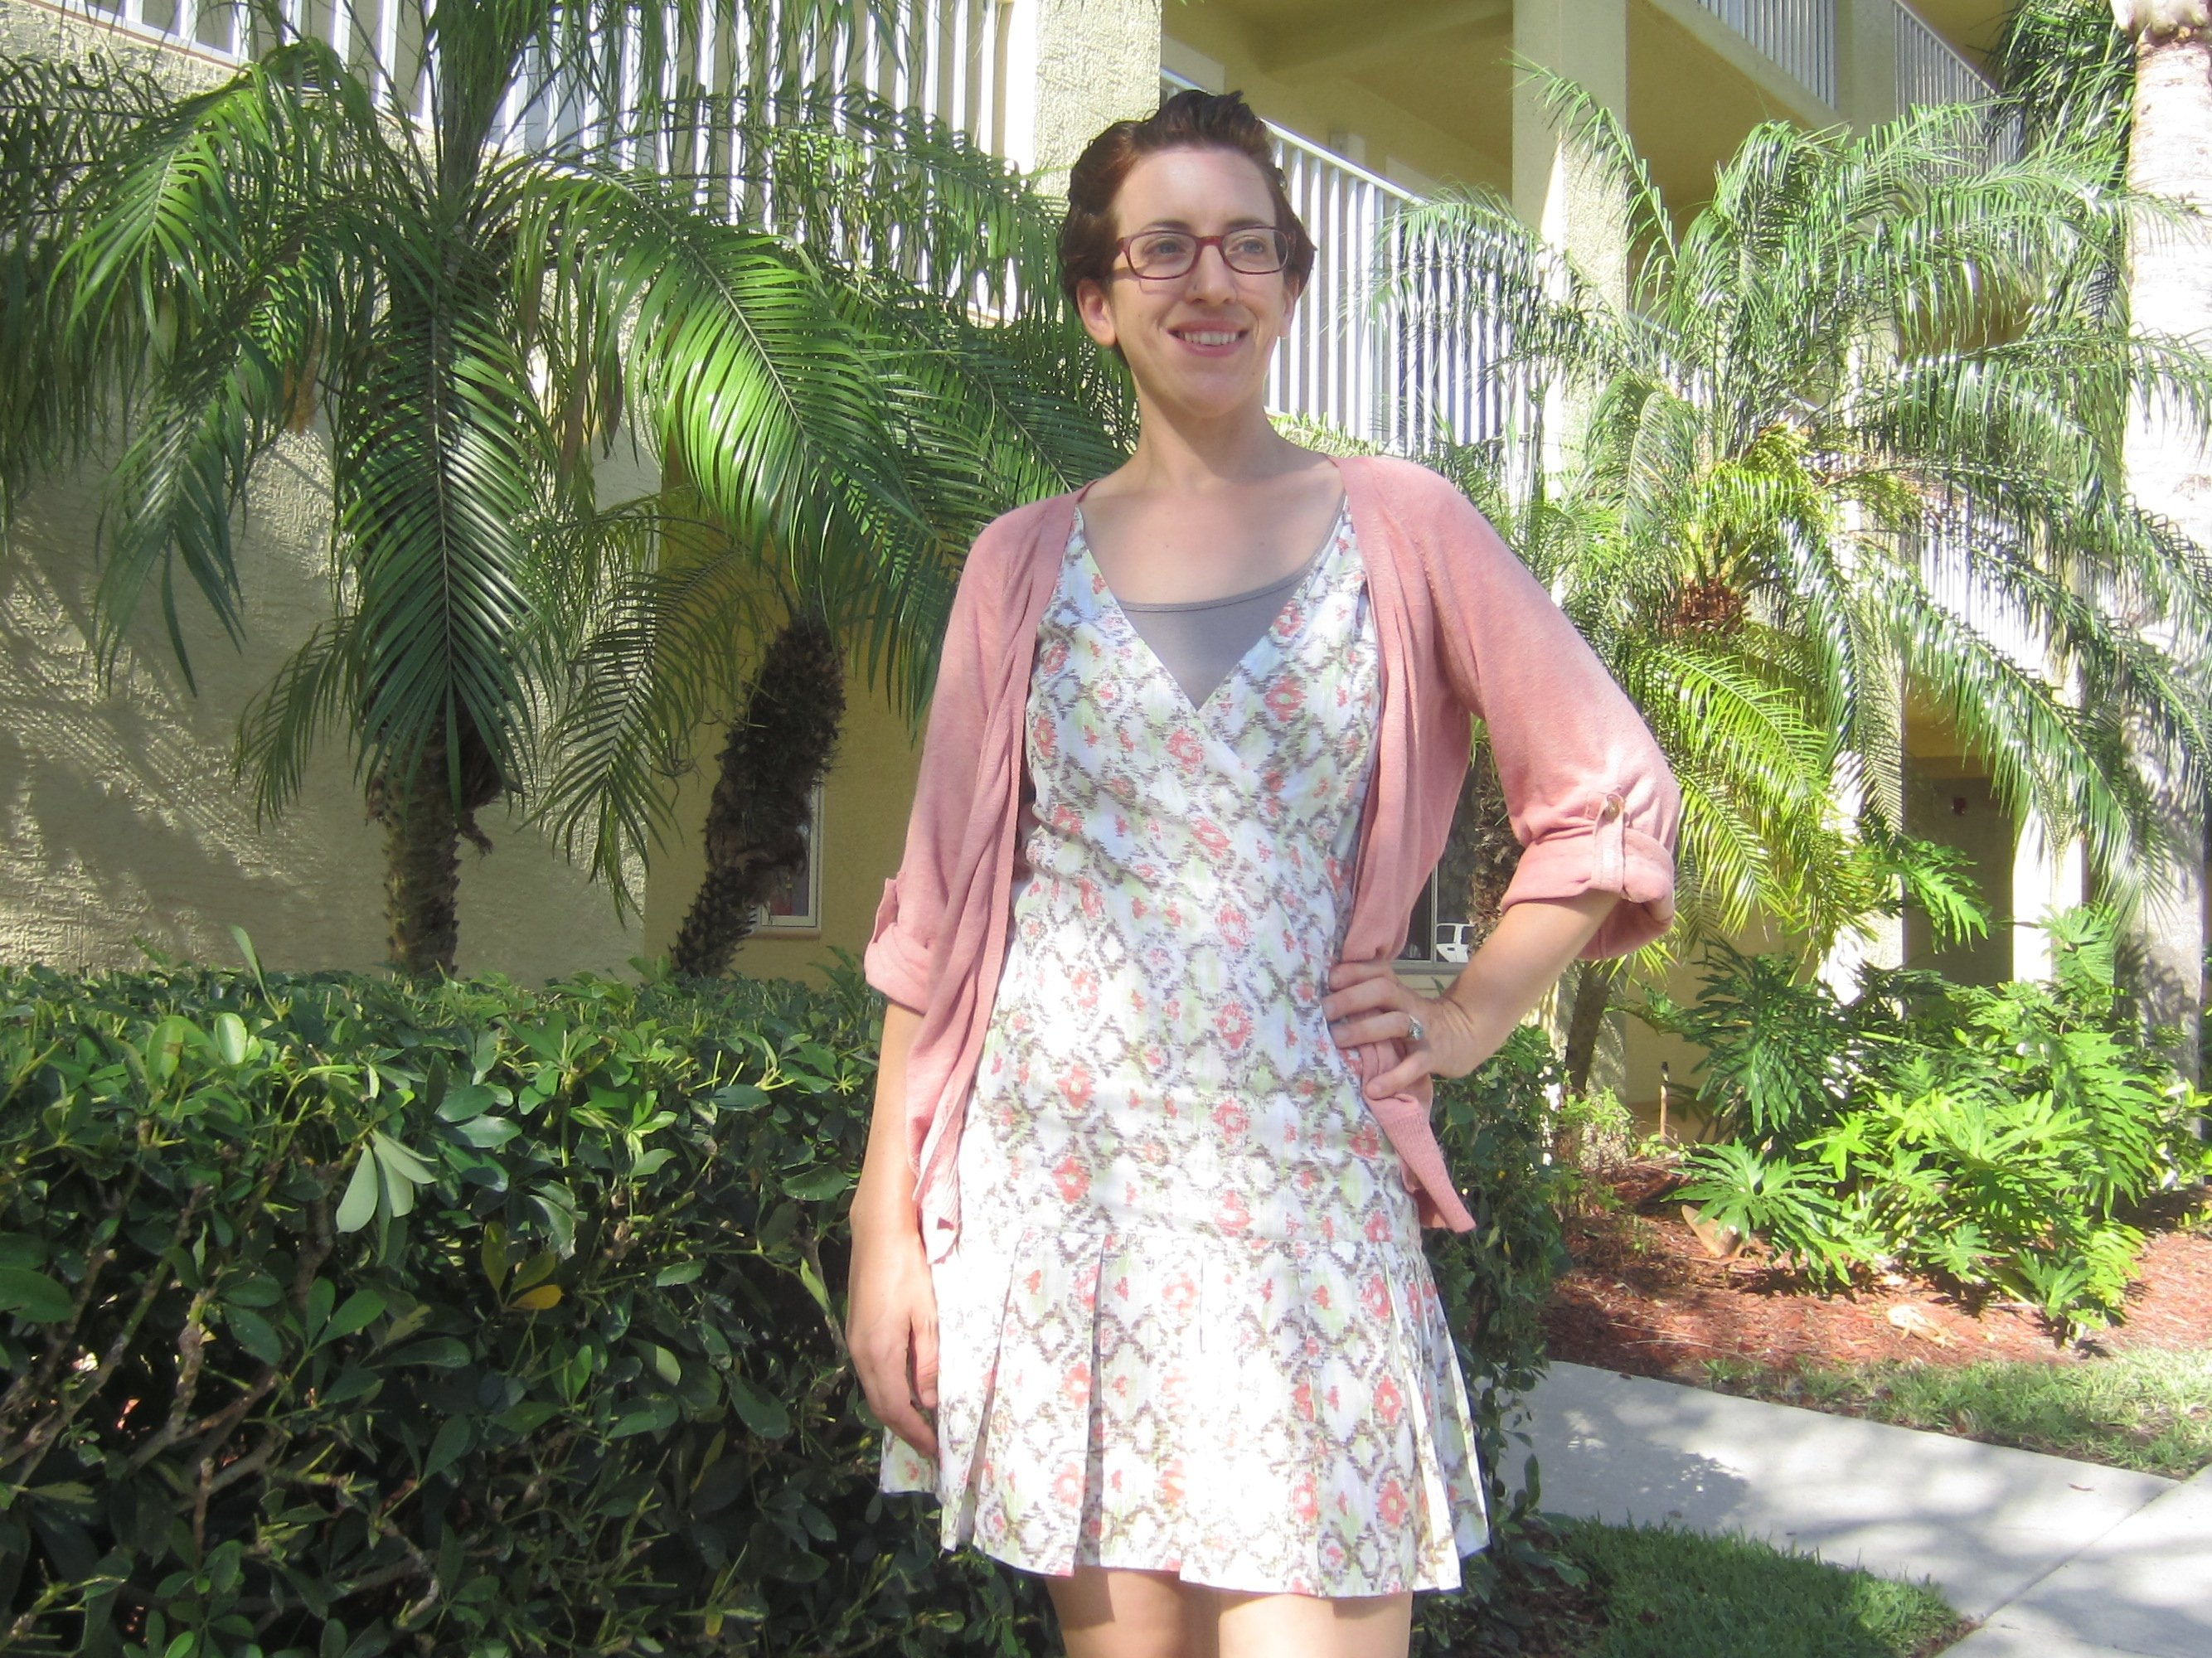 MMM Day 29! Wearing one of my first makes- an altered version of the Colette Laurel(unblogged). I made a crossover bodice for nursing and added pleats to the lower half of the dress. Plus a madder dyed sweater in the morning. #mmmay14